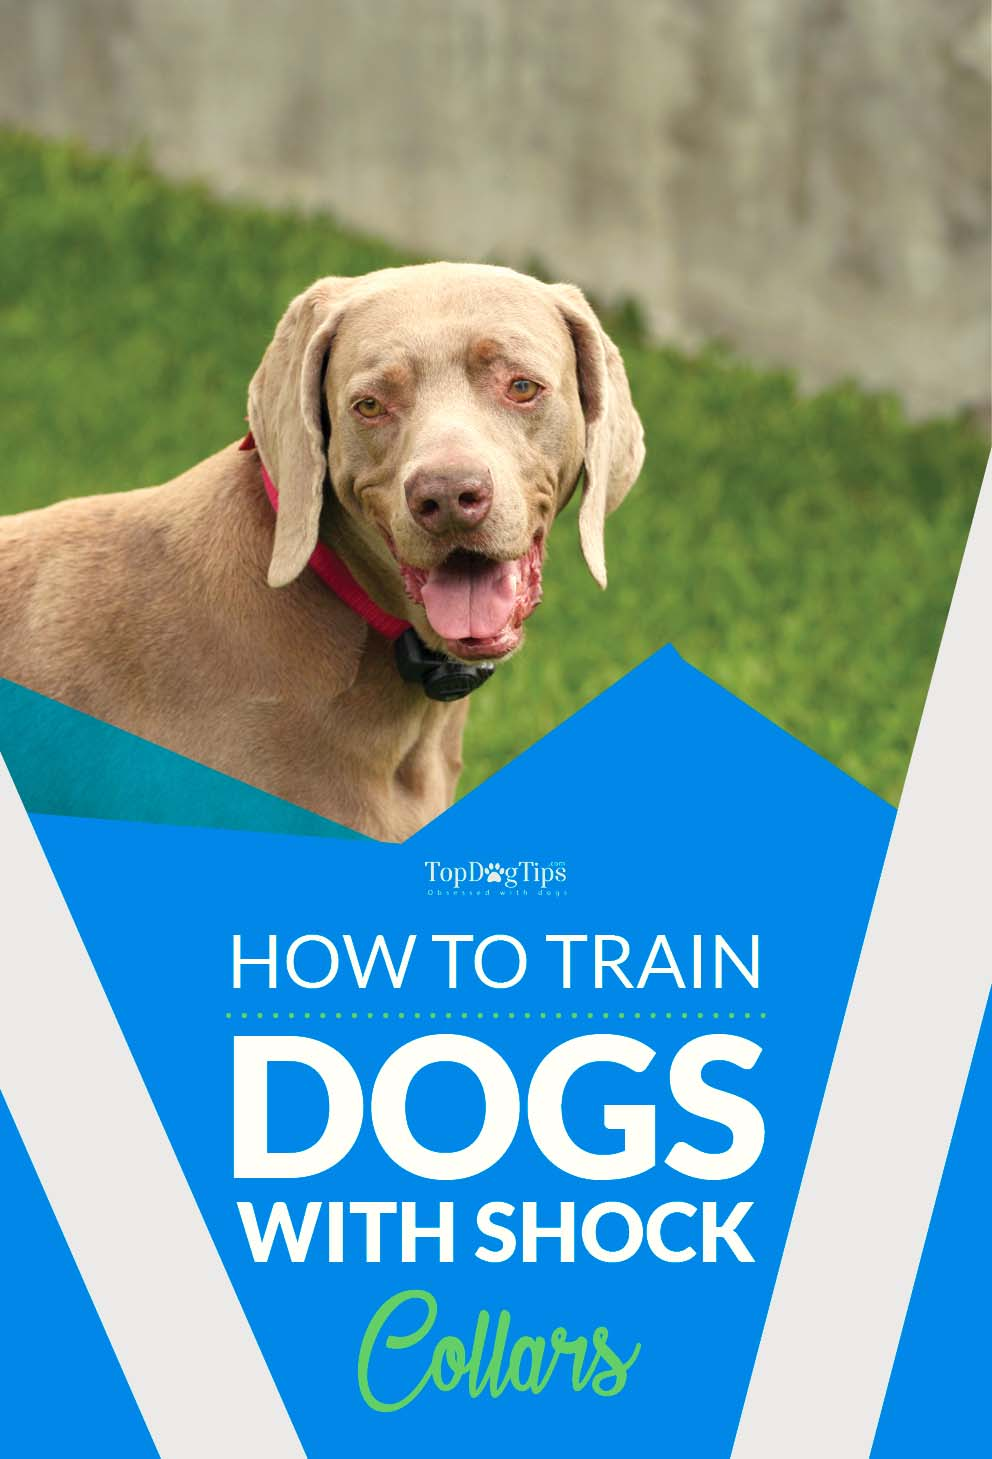 Training Dogs with Shock Collars